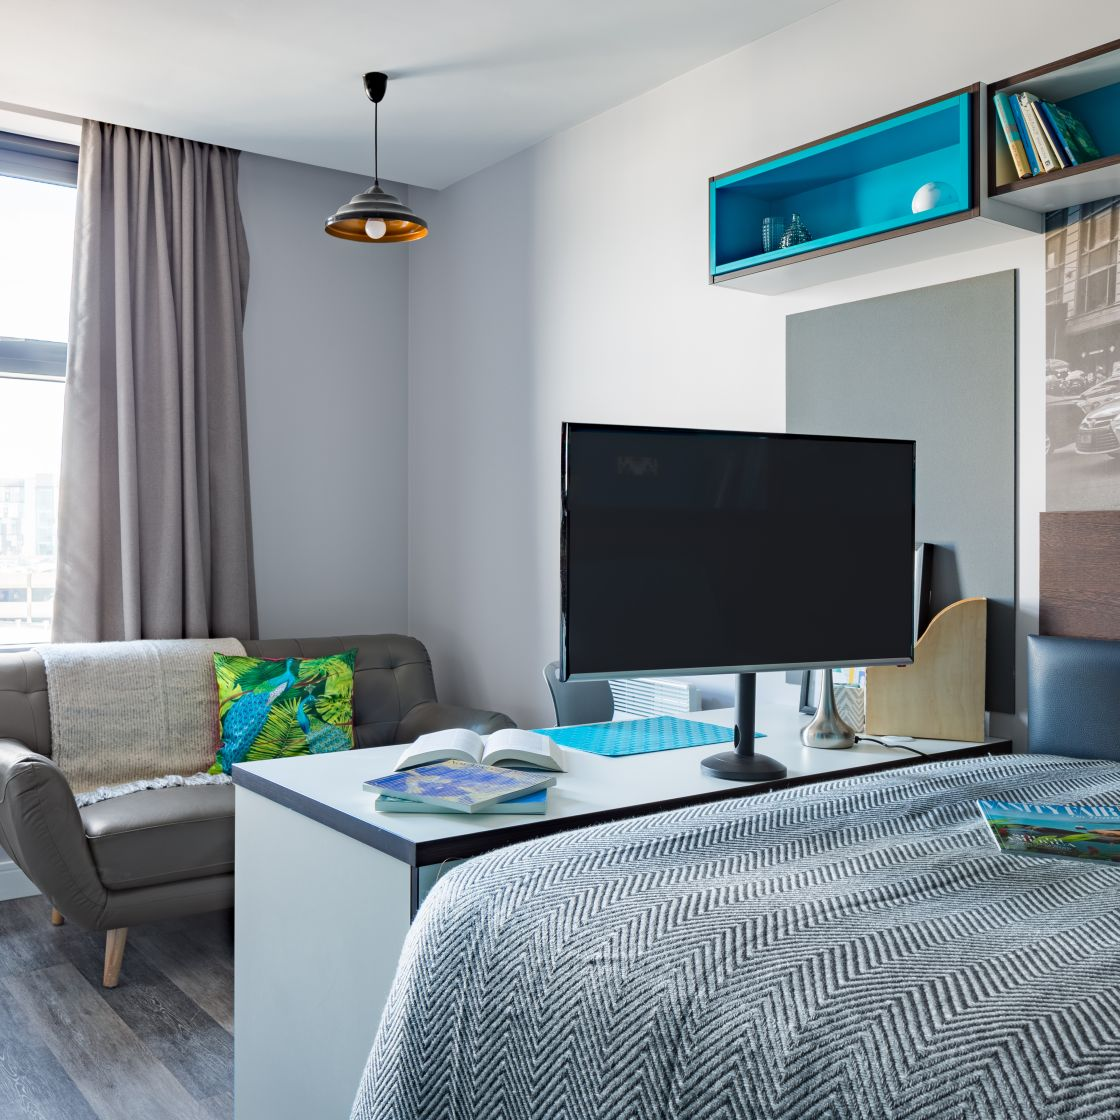 Smart Student Apartment in Liverpool. Double Bed, TV and sofa. IconInc, The Ascent